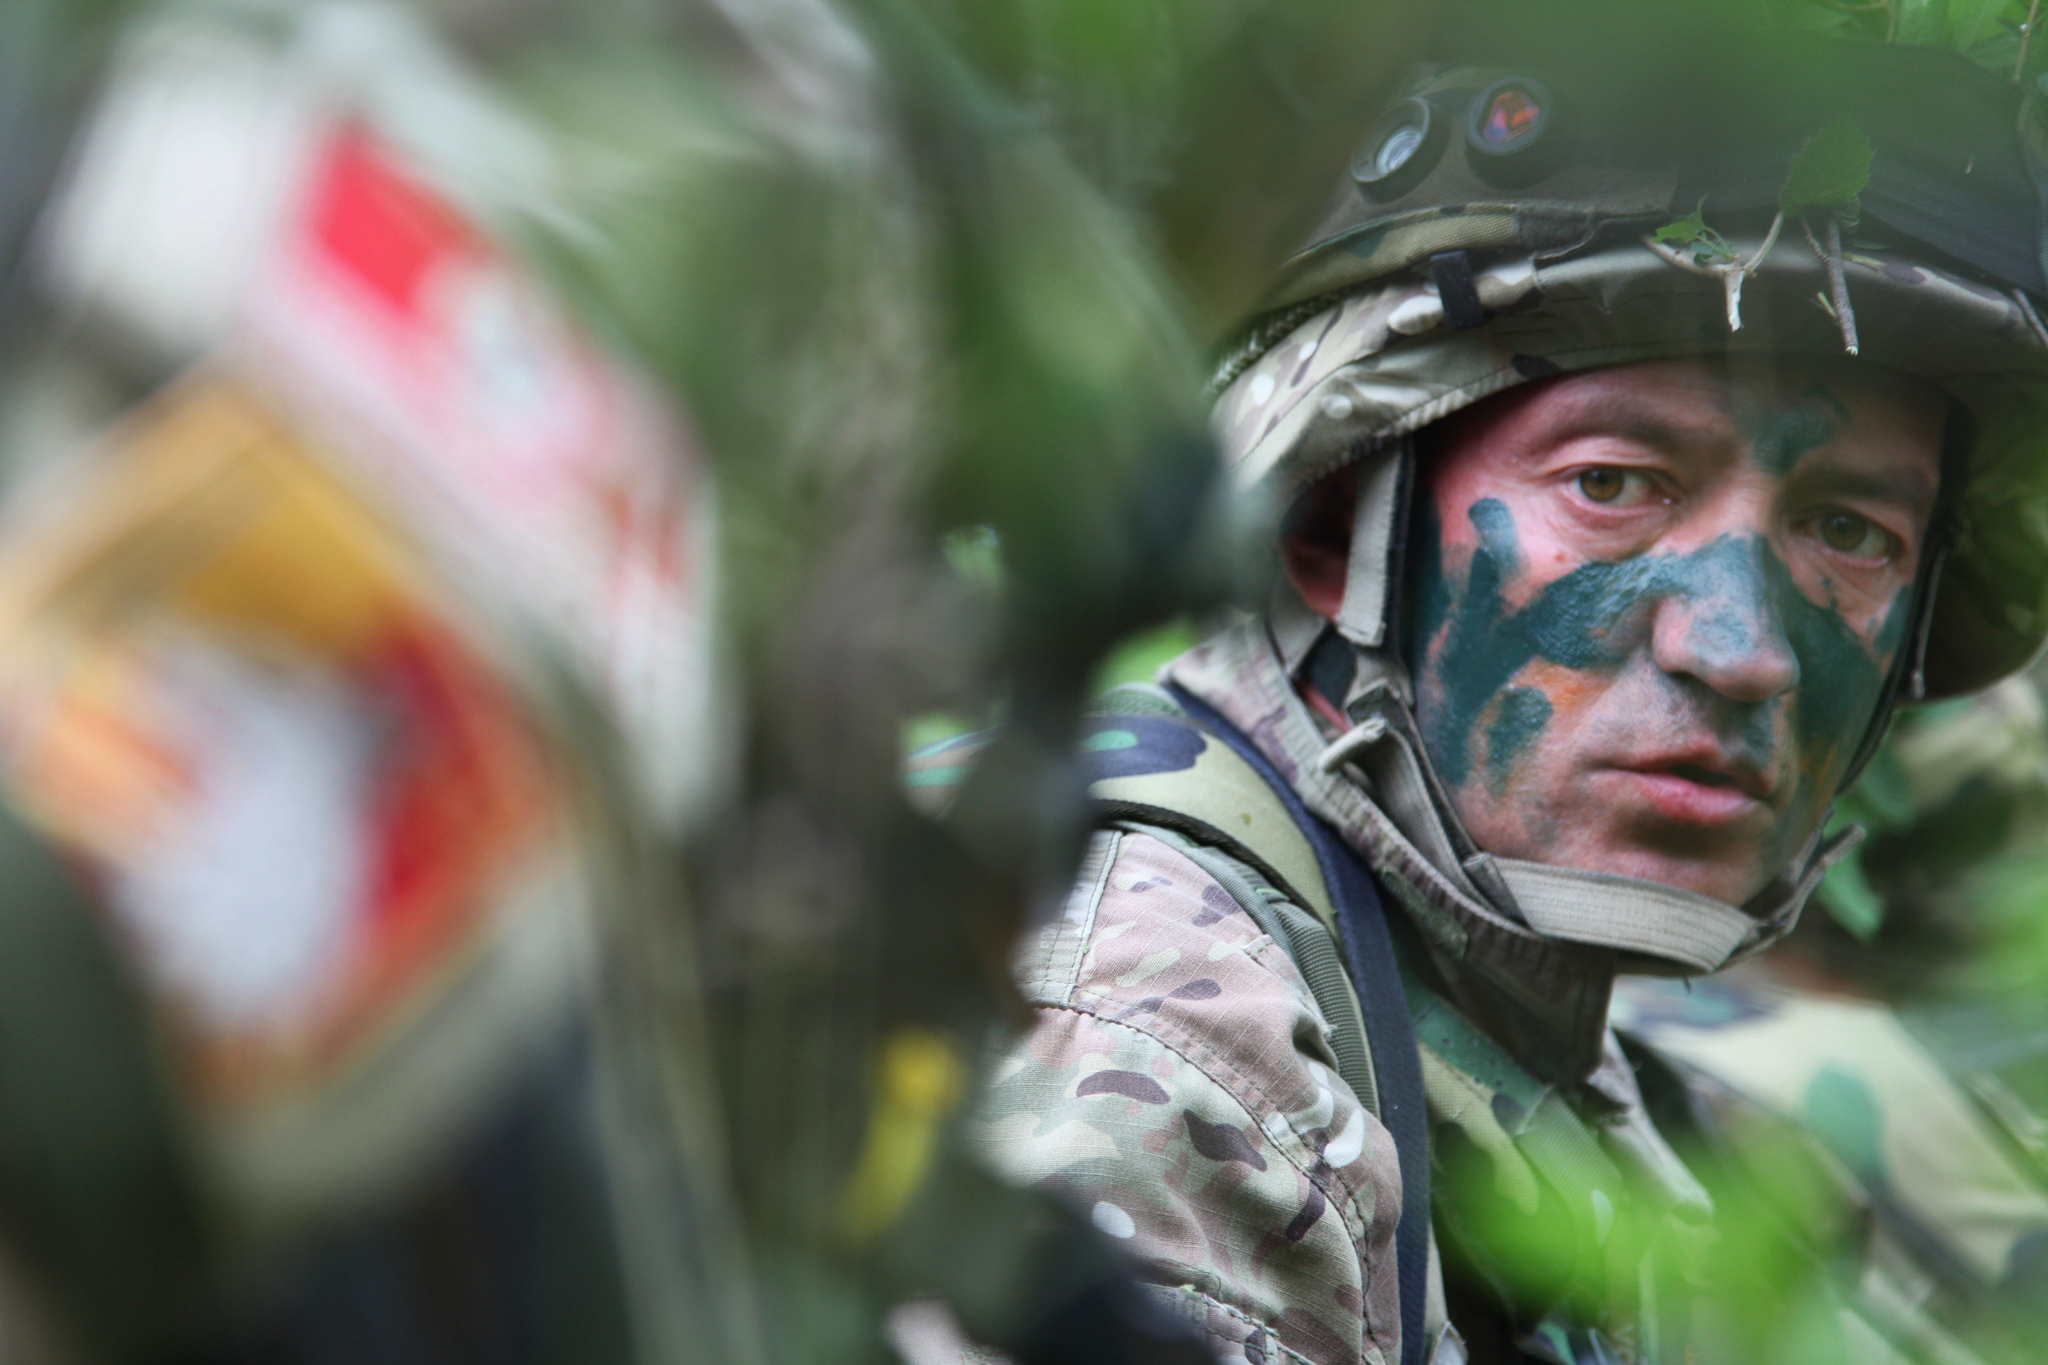 Immediate Response 2012 training event in Slunj, Croatia. Flickr/Department of Defense